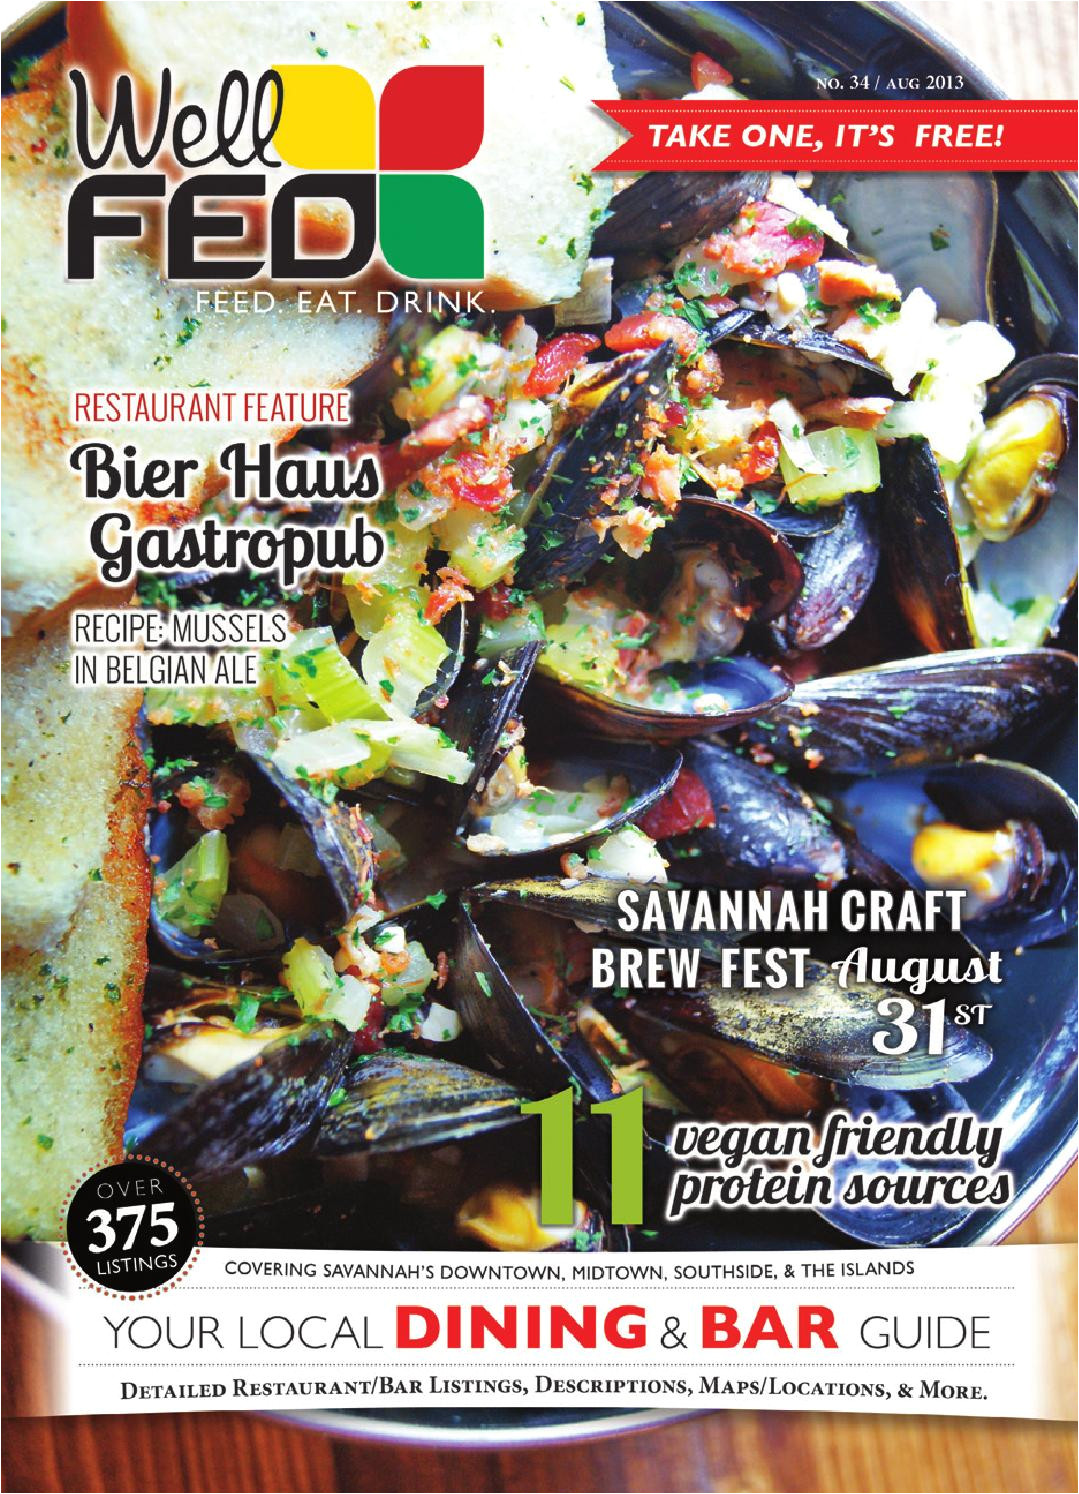 Chinese Food Delivery Savannah Ga 31401 Well Fed Savannah August 2013 by Well Fed issuu